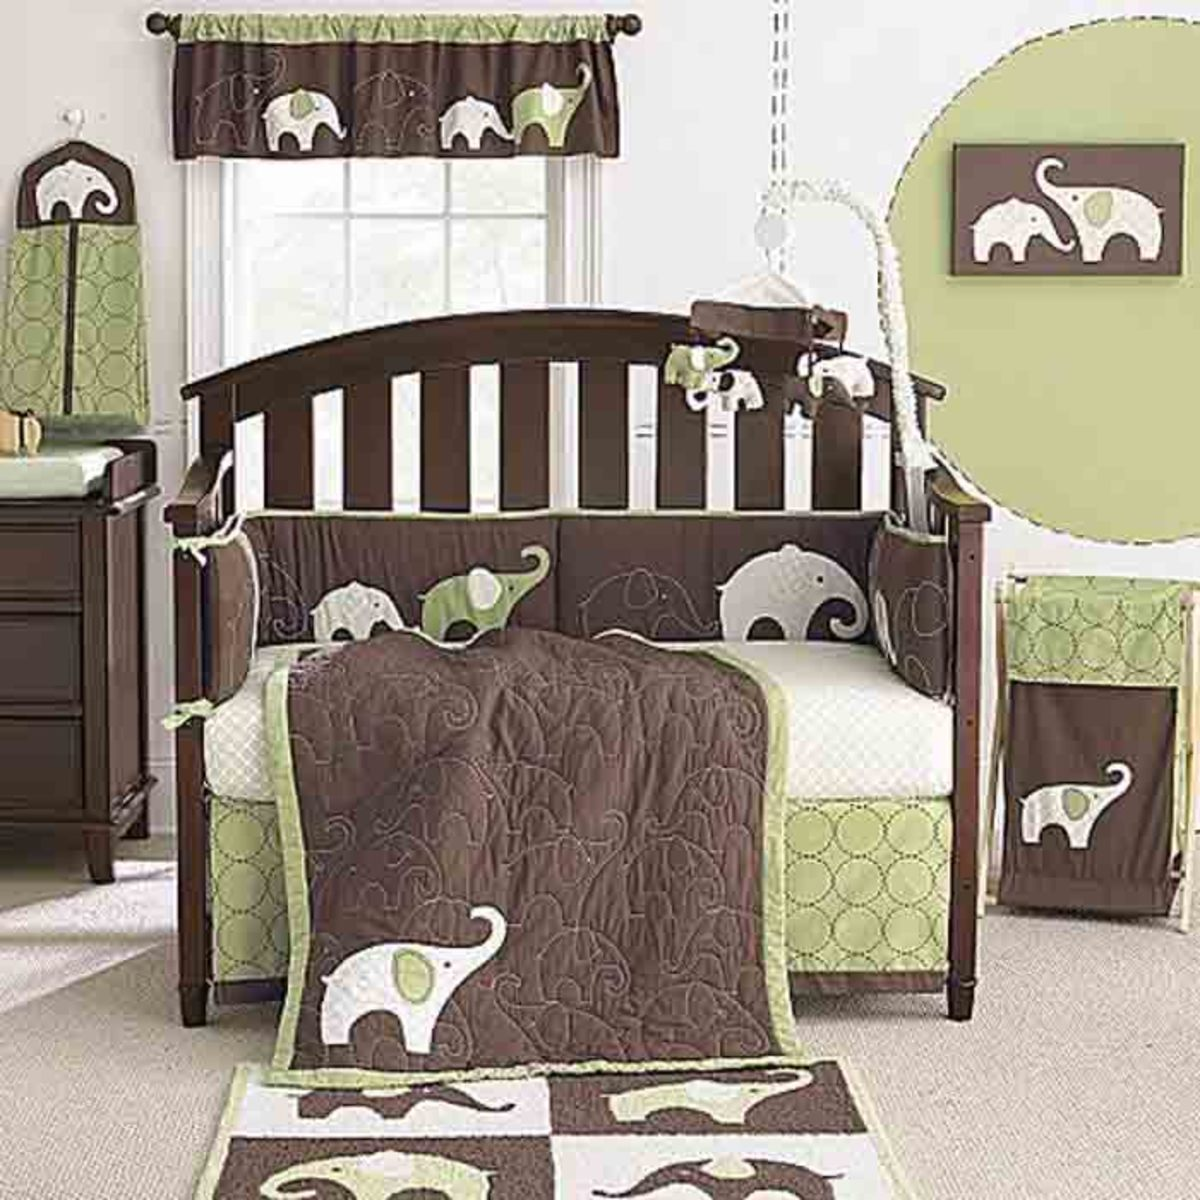 Decorating ideas for a baby boy nursery for Baby room decoration boy